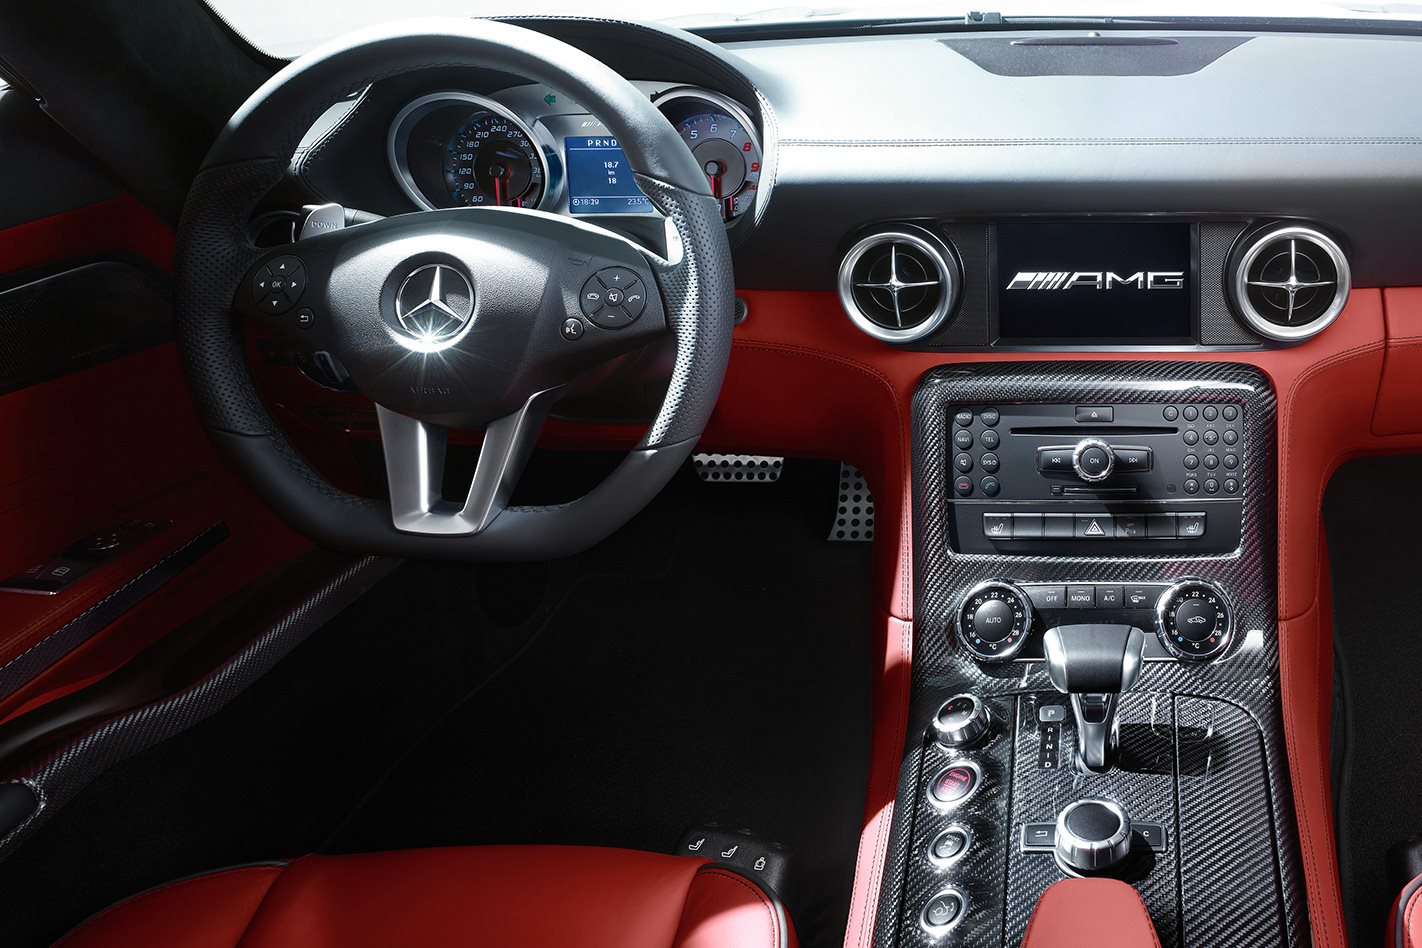 Mercedes-Benz SLS AMG steering wheel